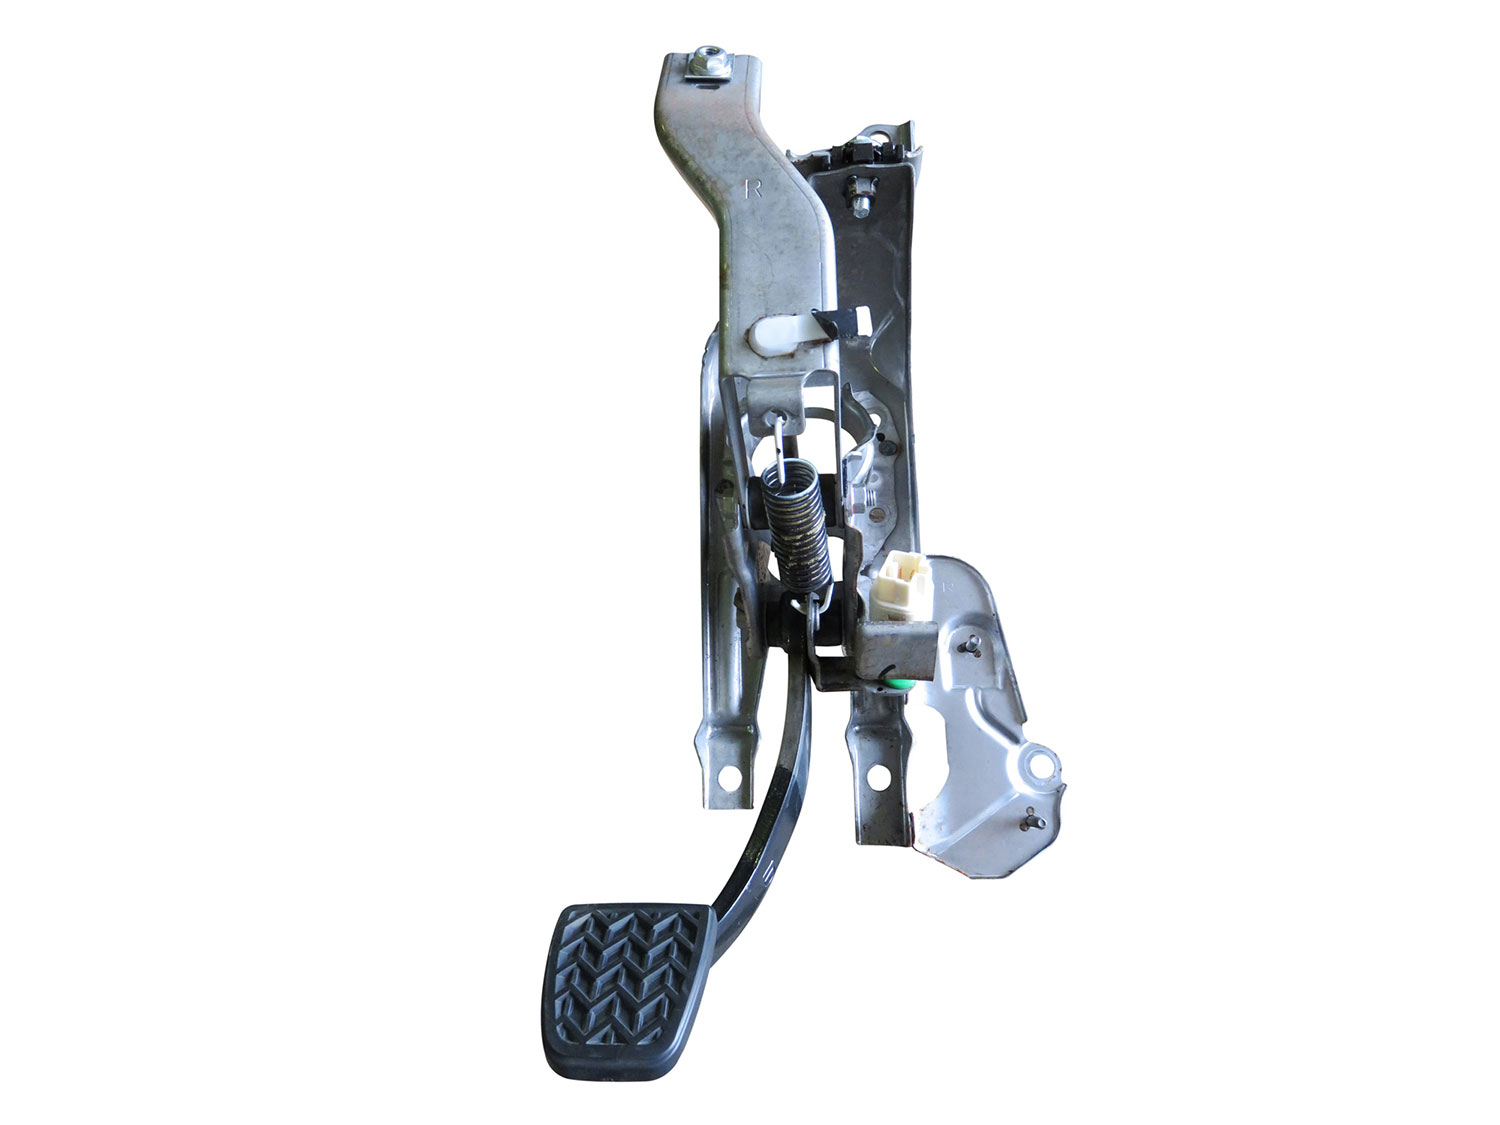 Suppliers Of Quality Used Toyota Quantum Brake Pedals | Taxi Auto Parts